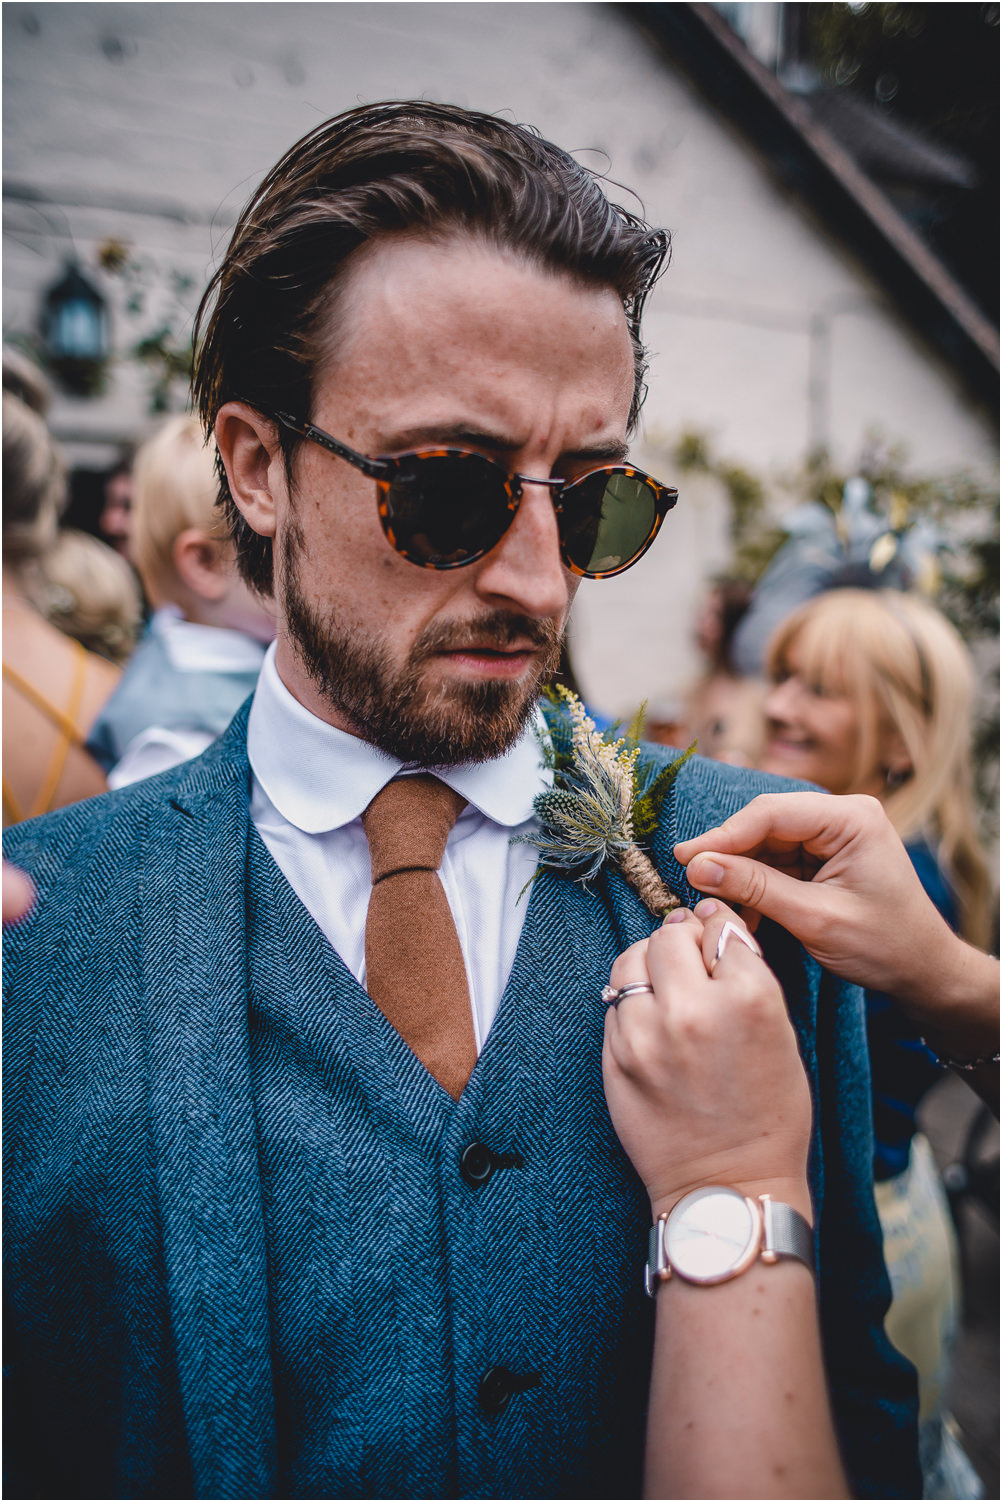 Blue Herringbone Tweed Suit Groom Sunglasses Hessian Sea Holly Buttonhole Round Collar Shirt DIY Bohemian Wedding Love & Bloom Photography